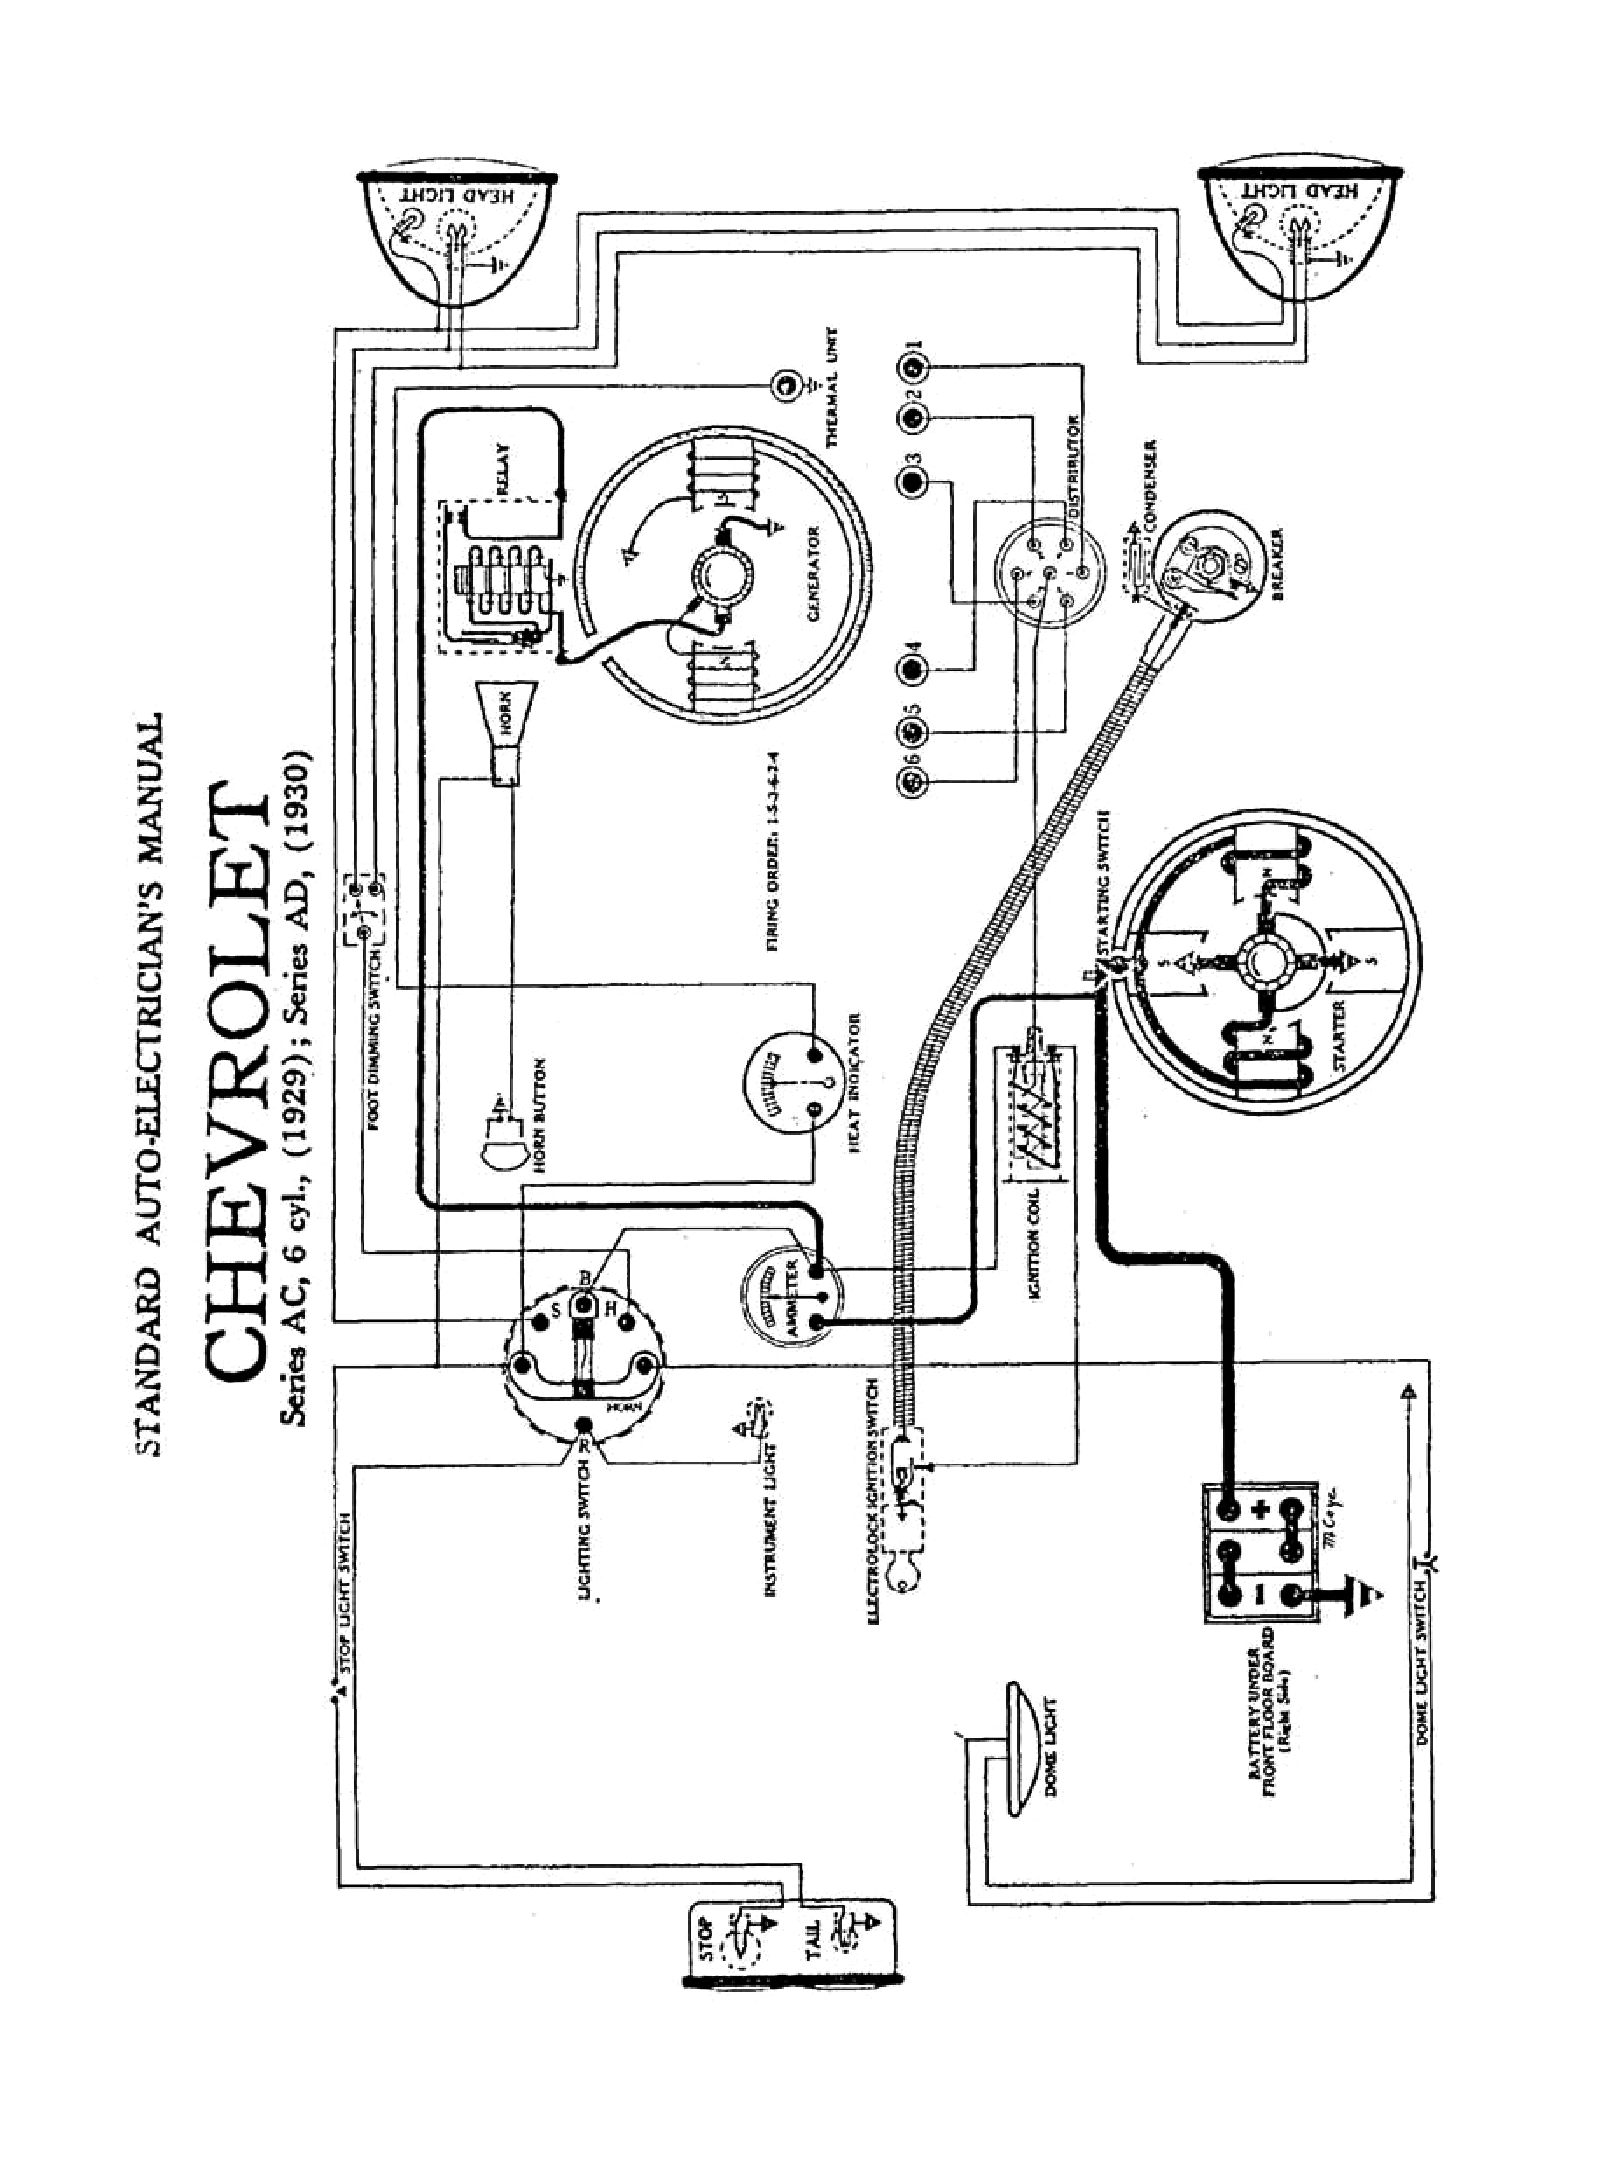 1931 Chevrolet Wiring Diagram on lincoln aviator wiring diagram